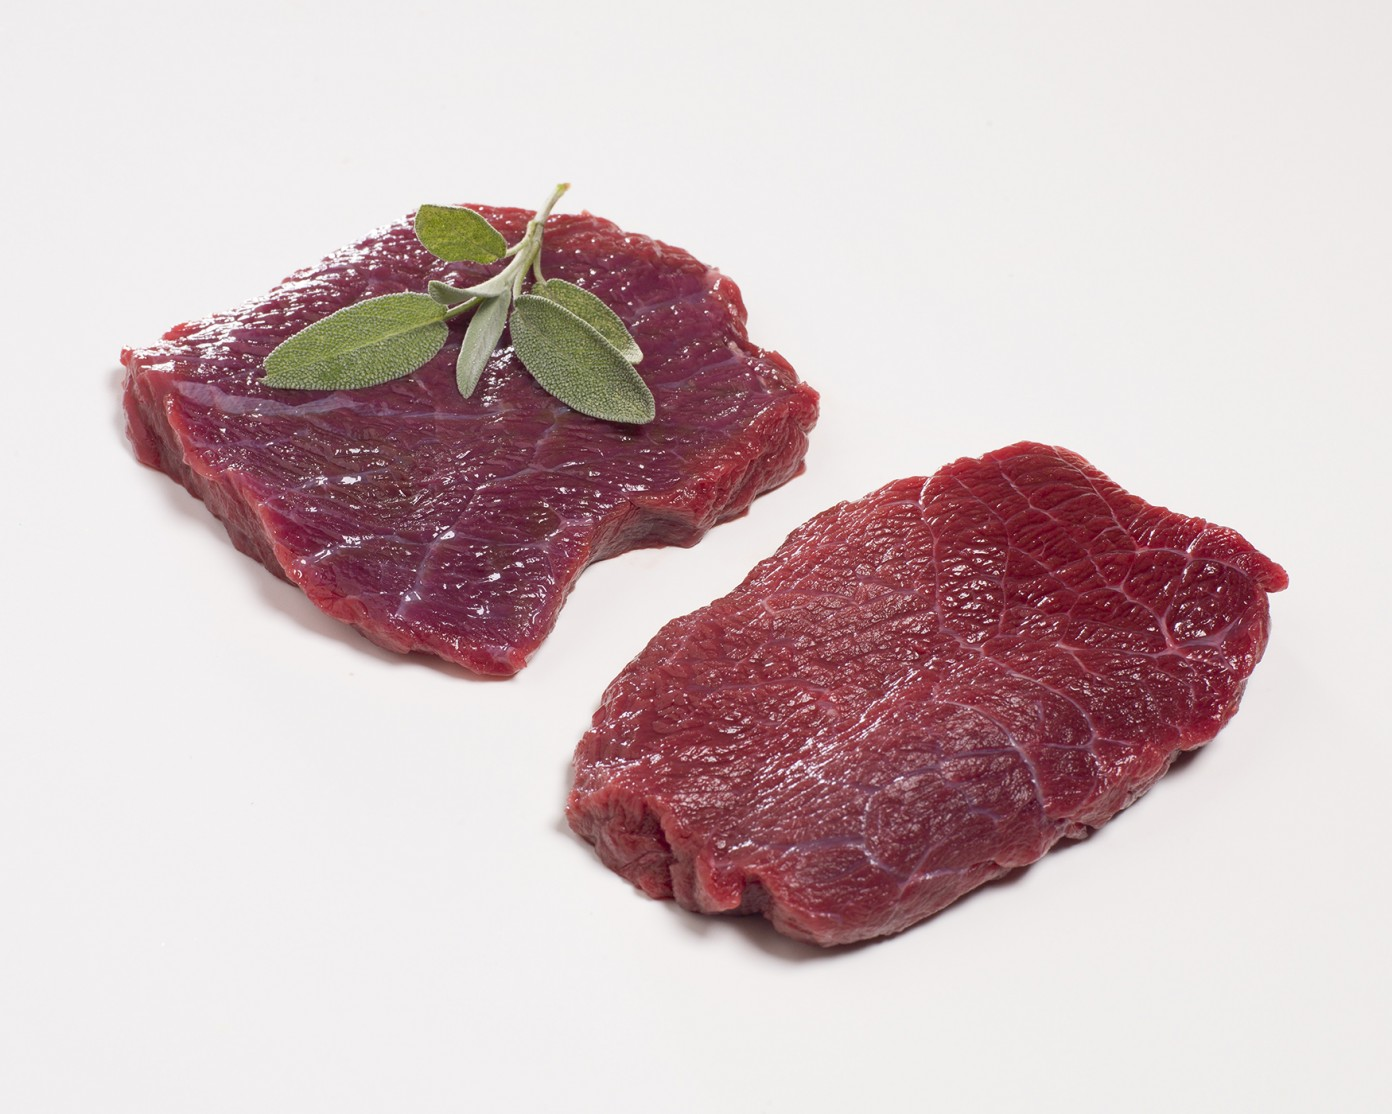 Kameel steak R_1.jpg